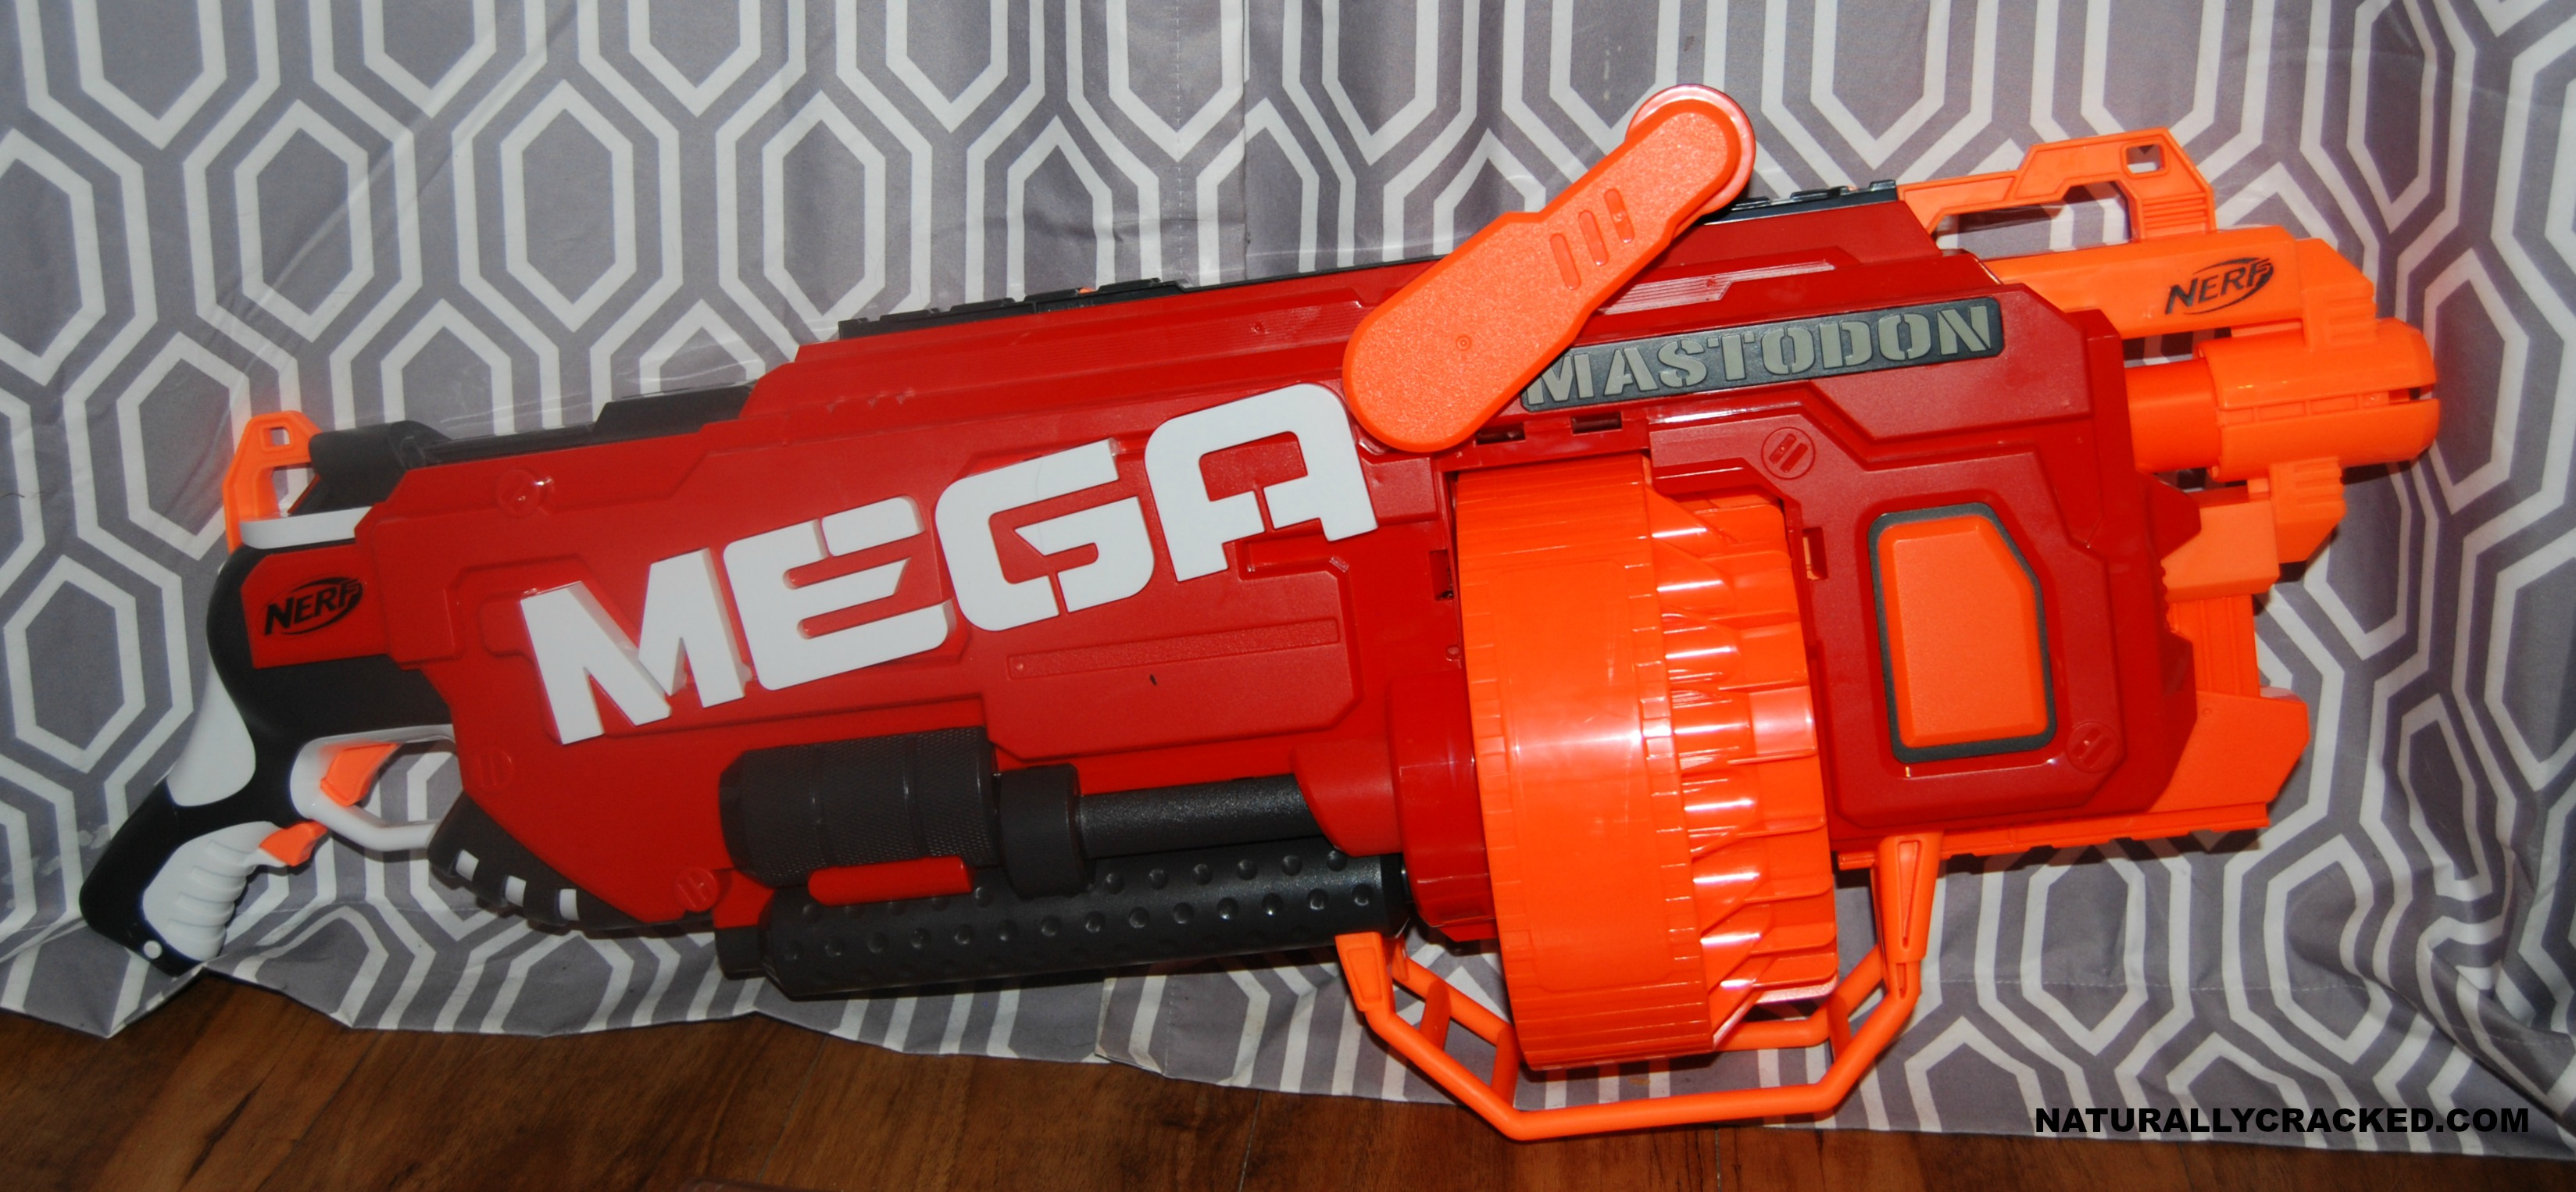 Nerf has been a brand in my home since my oldest was 3! Years later and my  home is still littered with blasters, darts and various foam balls.